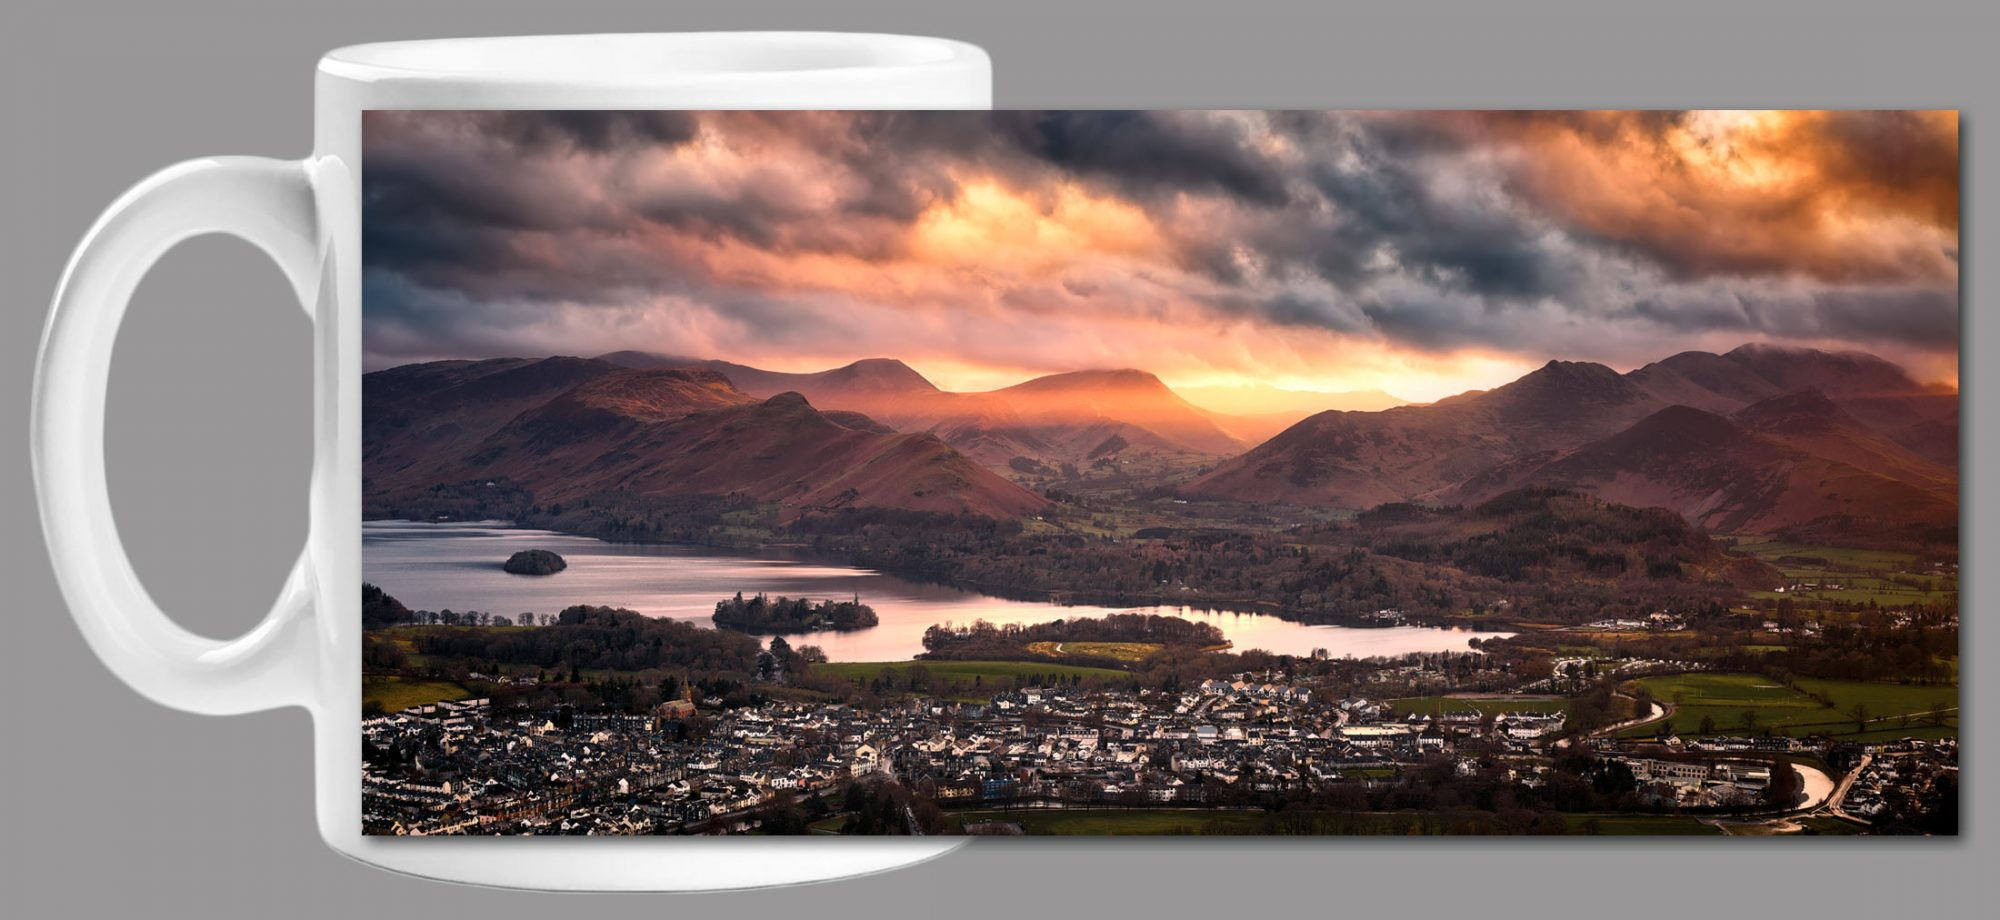 Rays of the Setting Sun Over-Cat Bells Mug